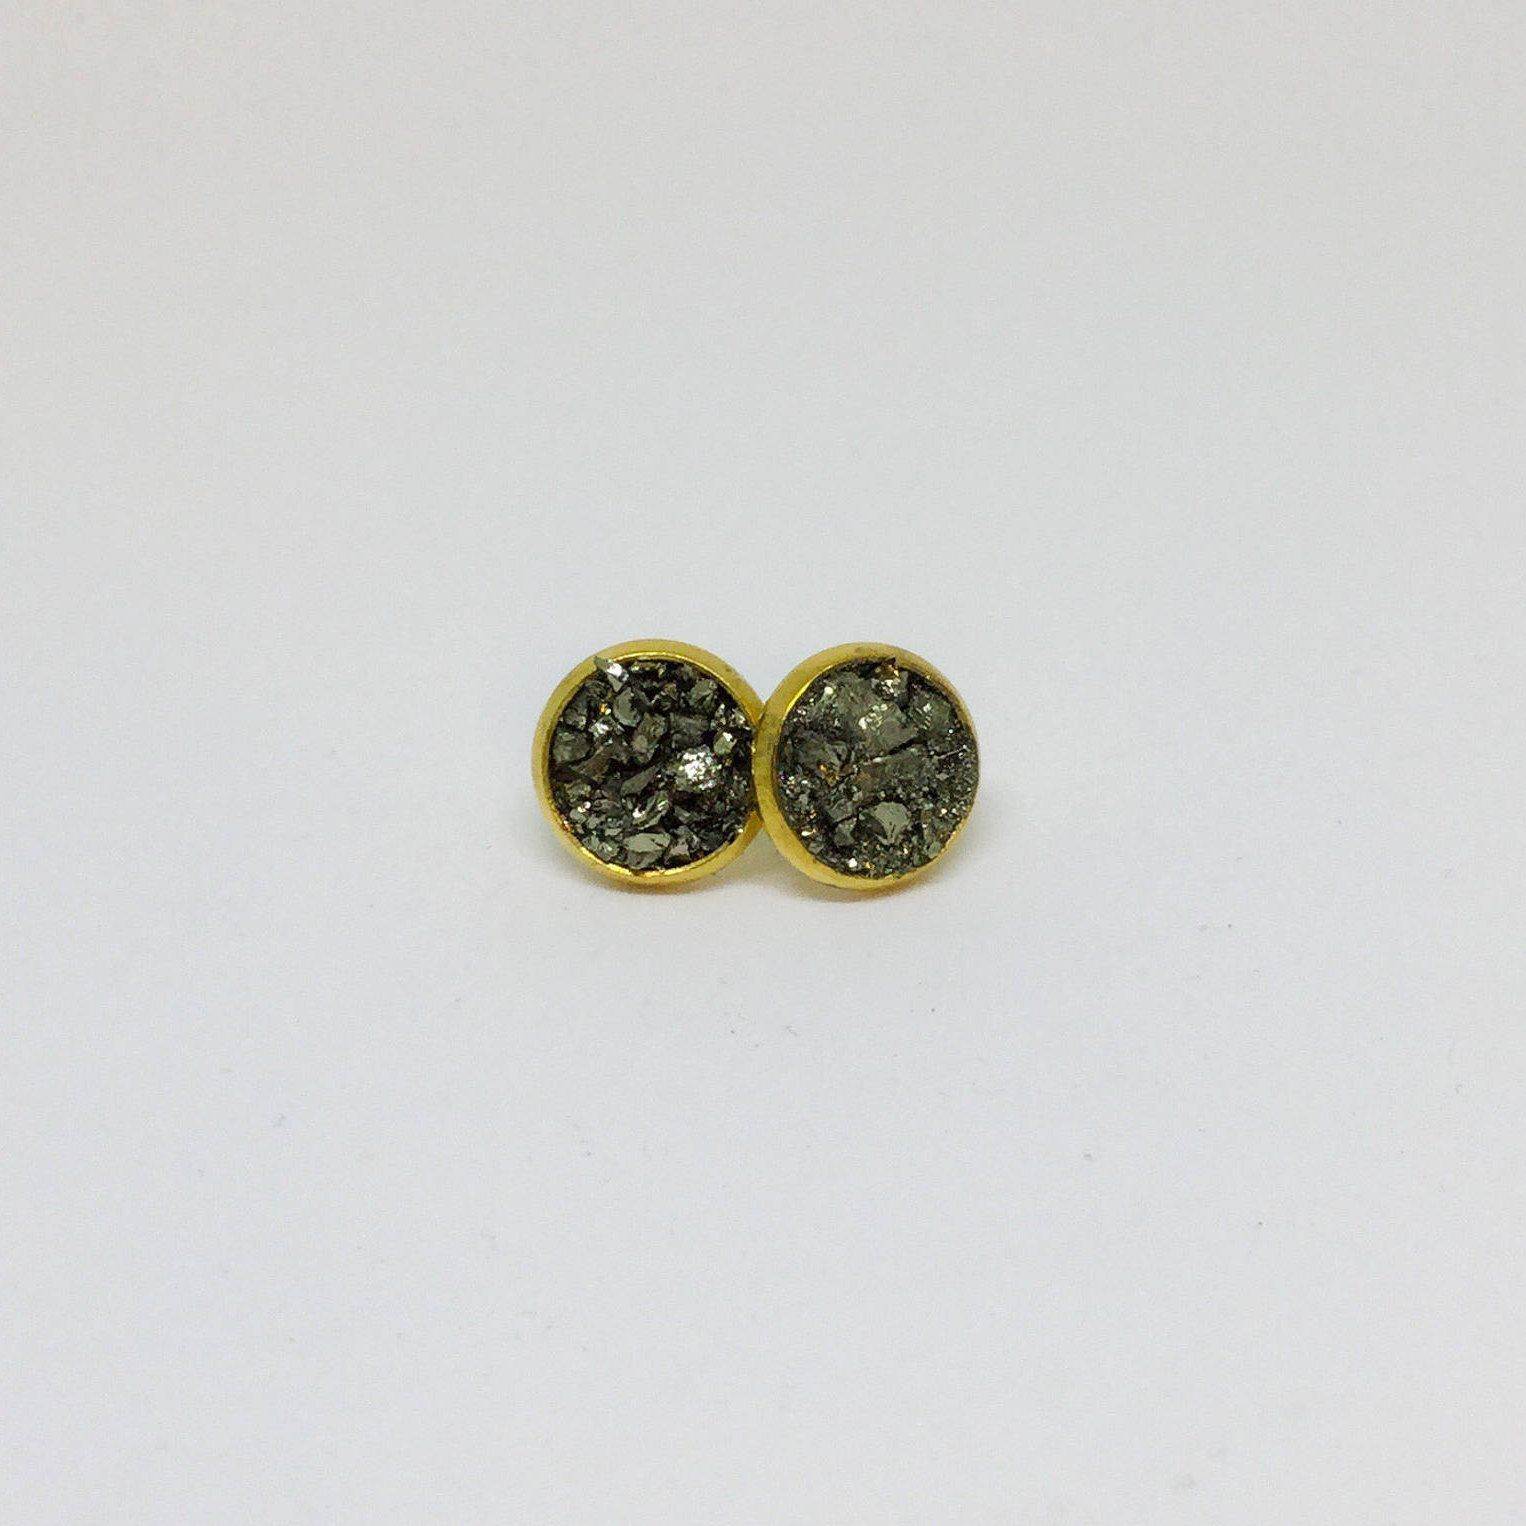 diamond earrings button women metallic jewel s dalewia pin and crushed gold